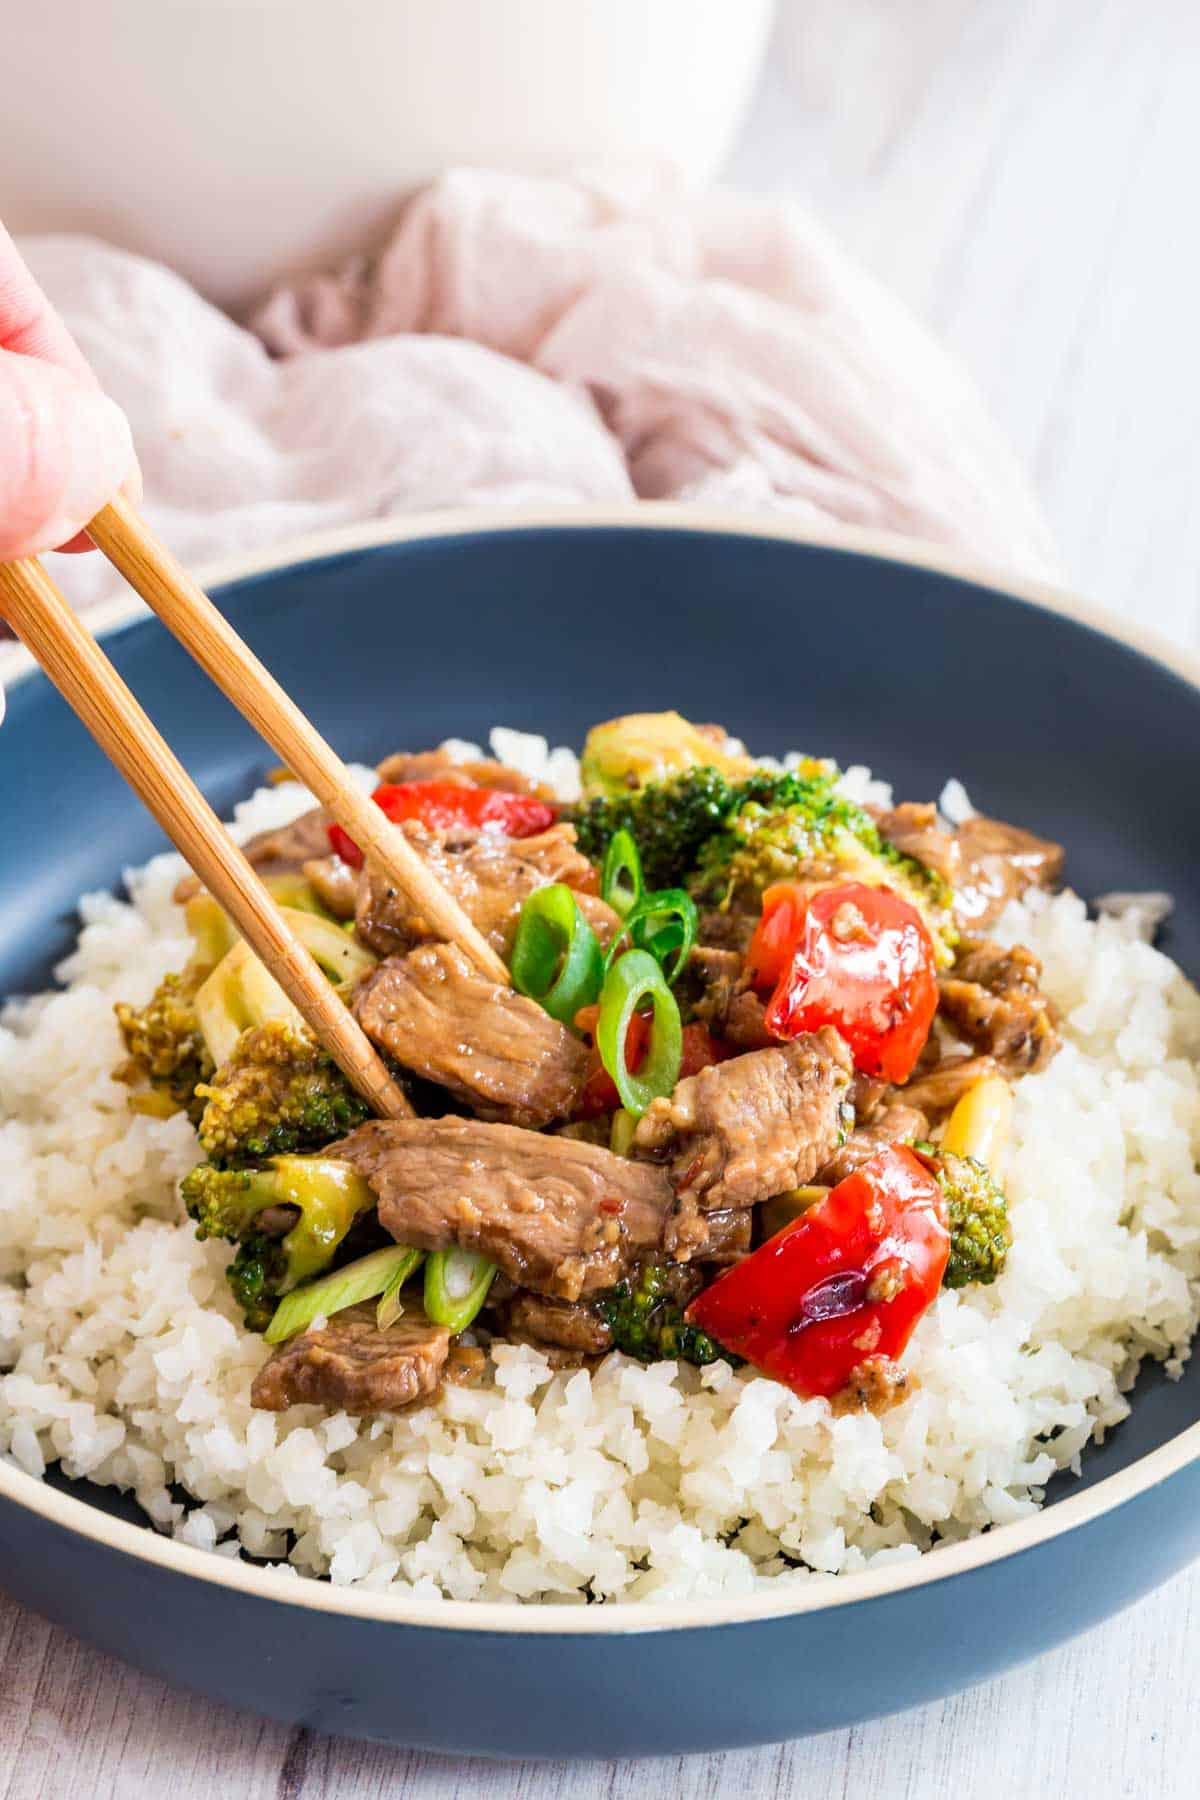 chopsticks picking up some hunan beef served over cauliflower rice in a blue bowl